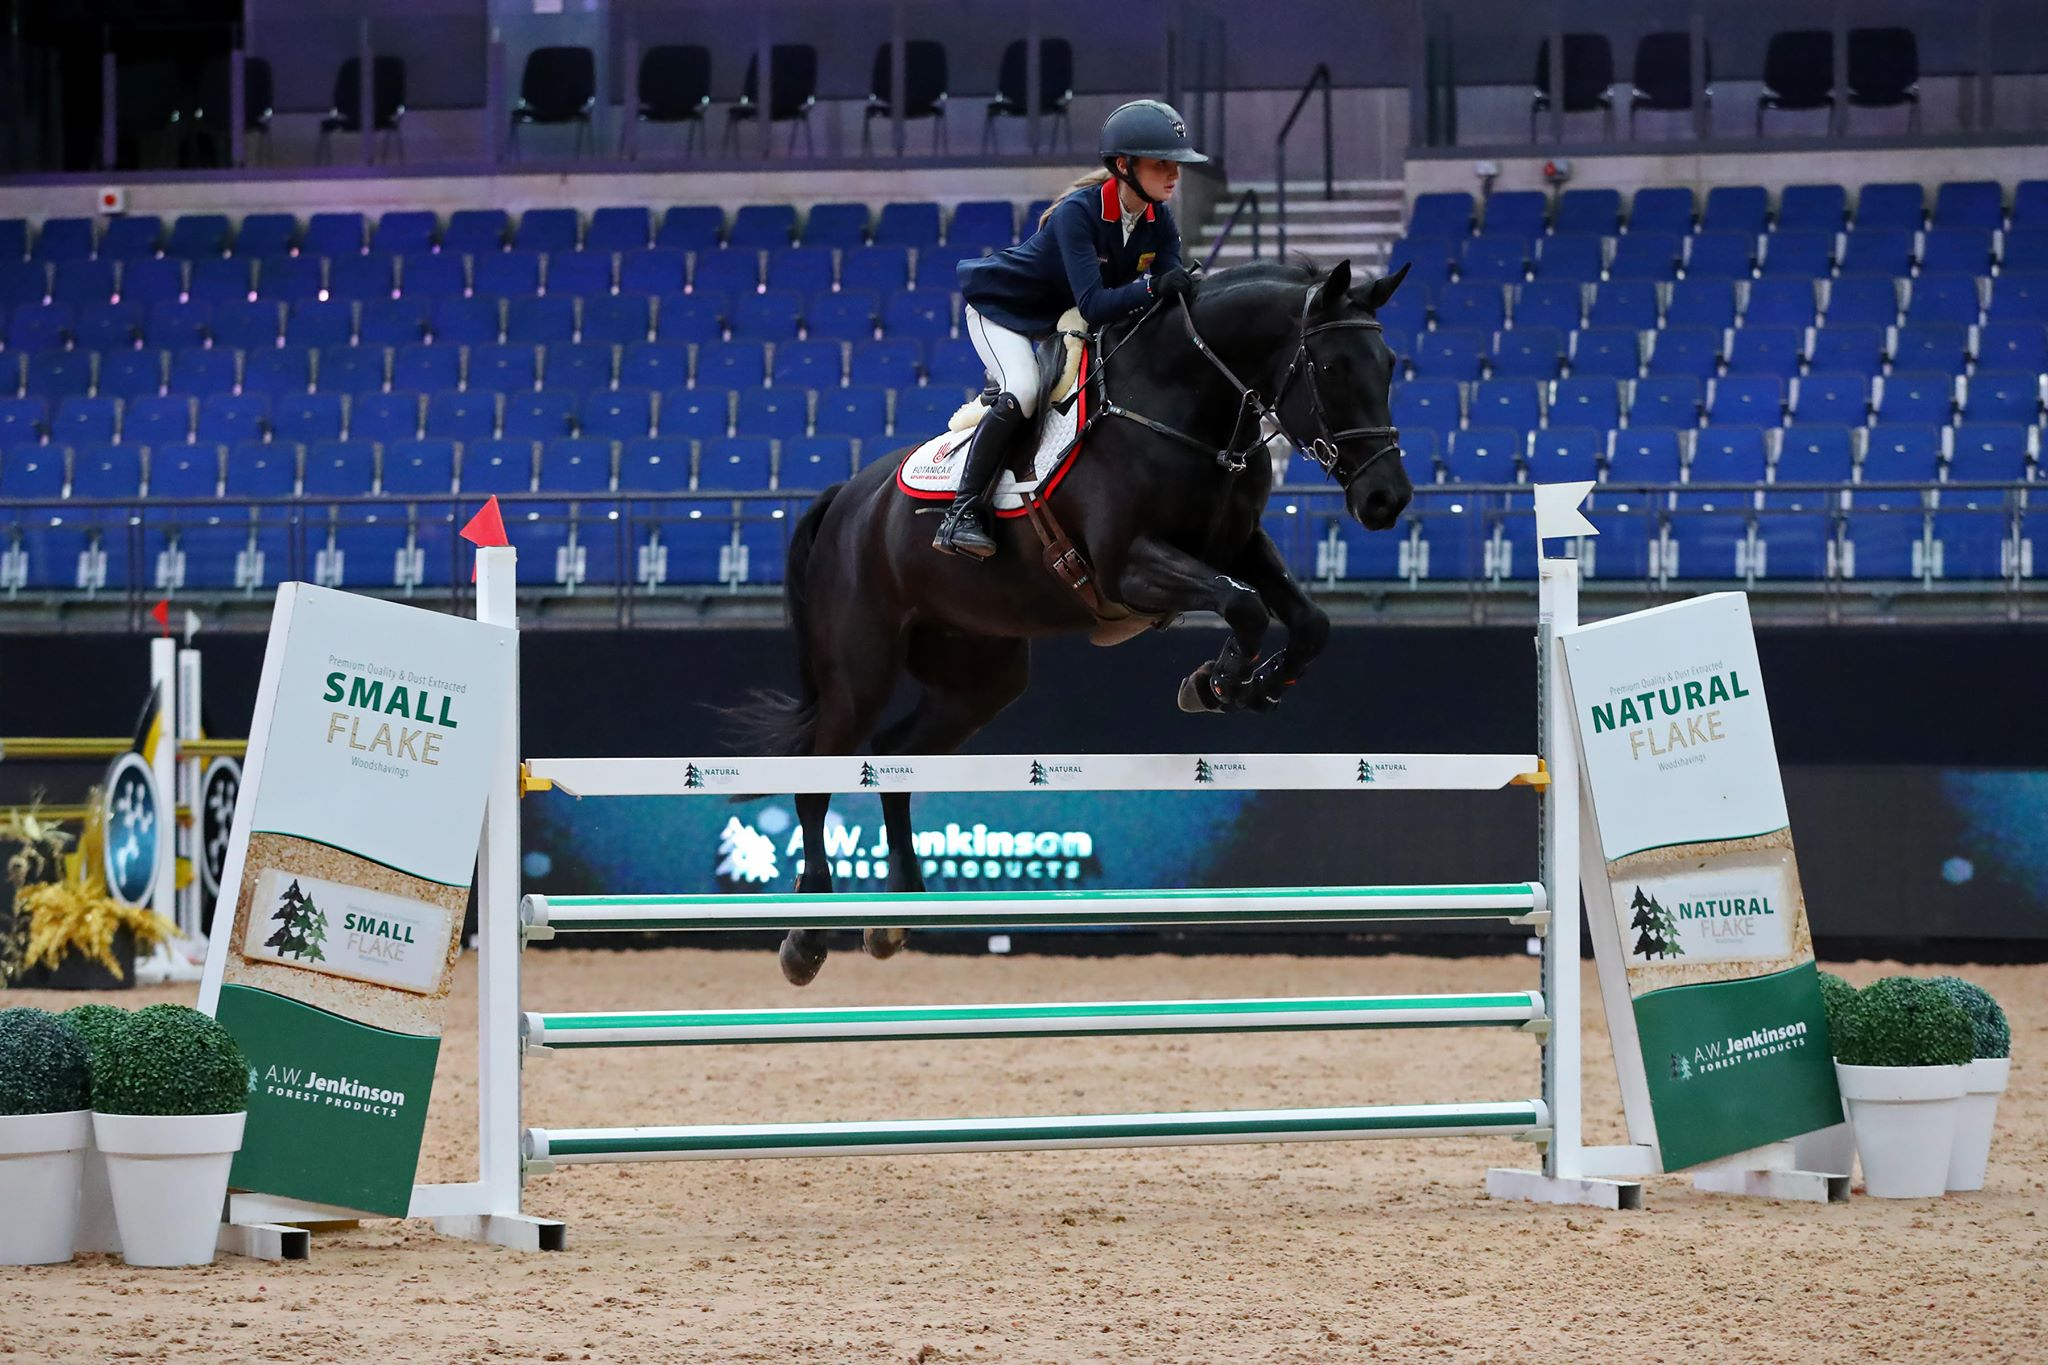 Lila Bremner, daughter of star impressionist Rory Bremner, triumphs at Liverpool International in the 1.25 Jump off